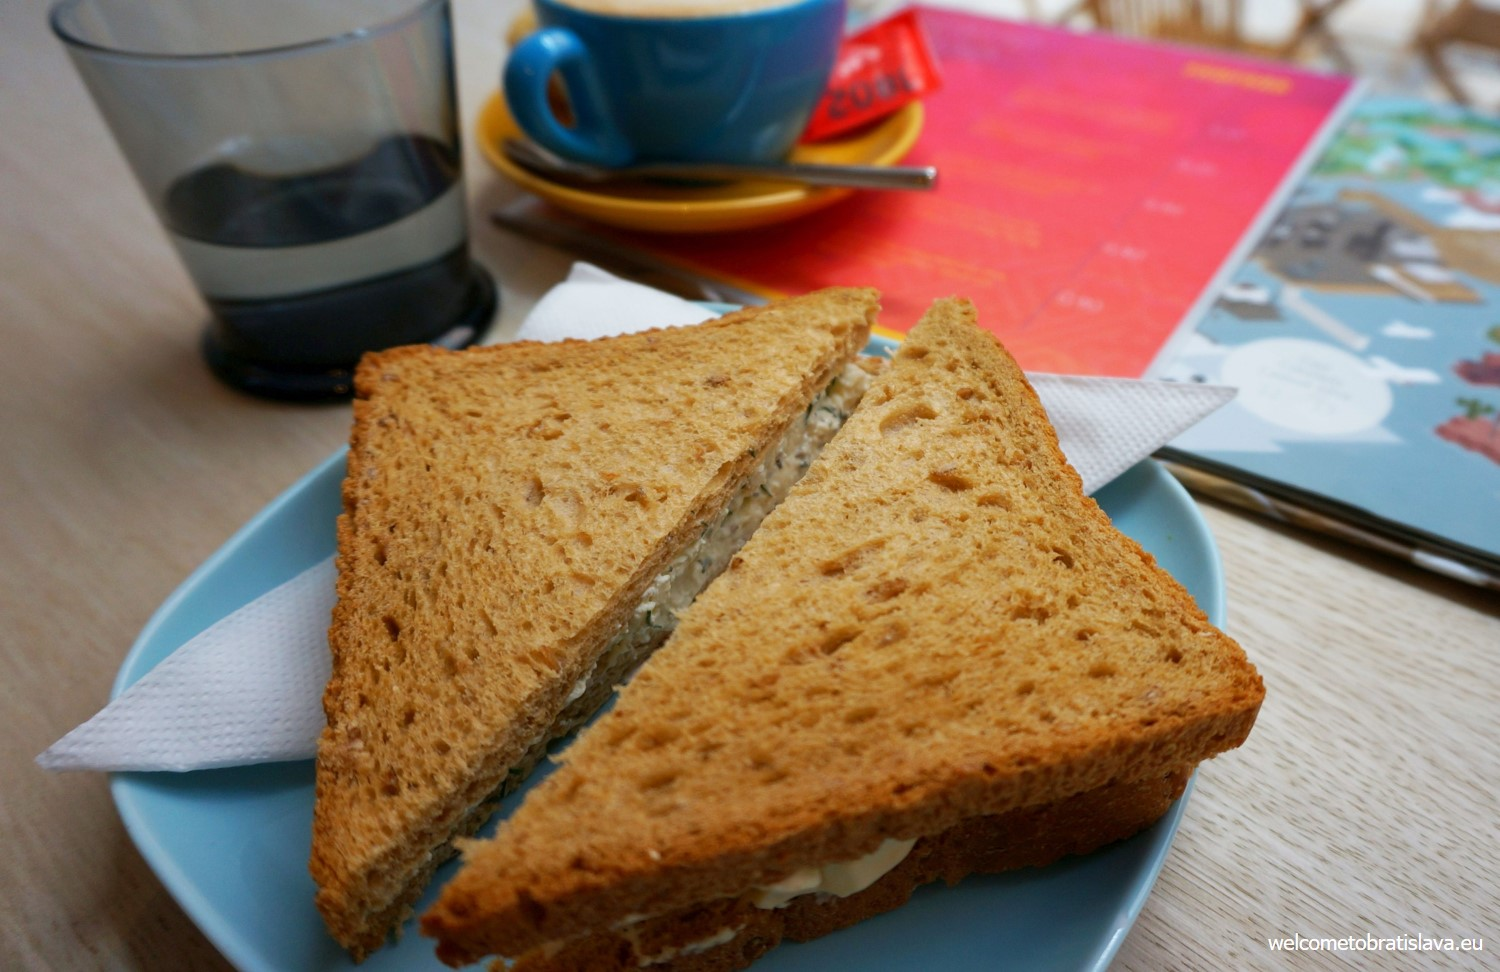 They have many kinds of small sandwiches which you can combine depending on how hungry you are.